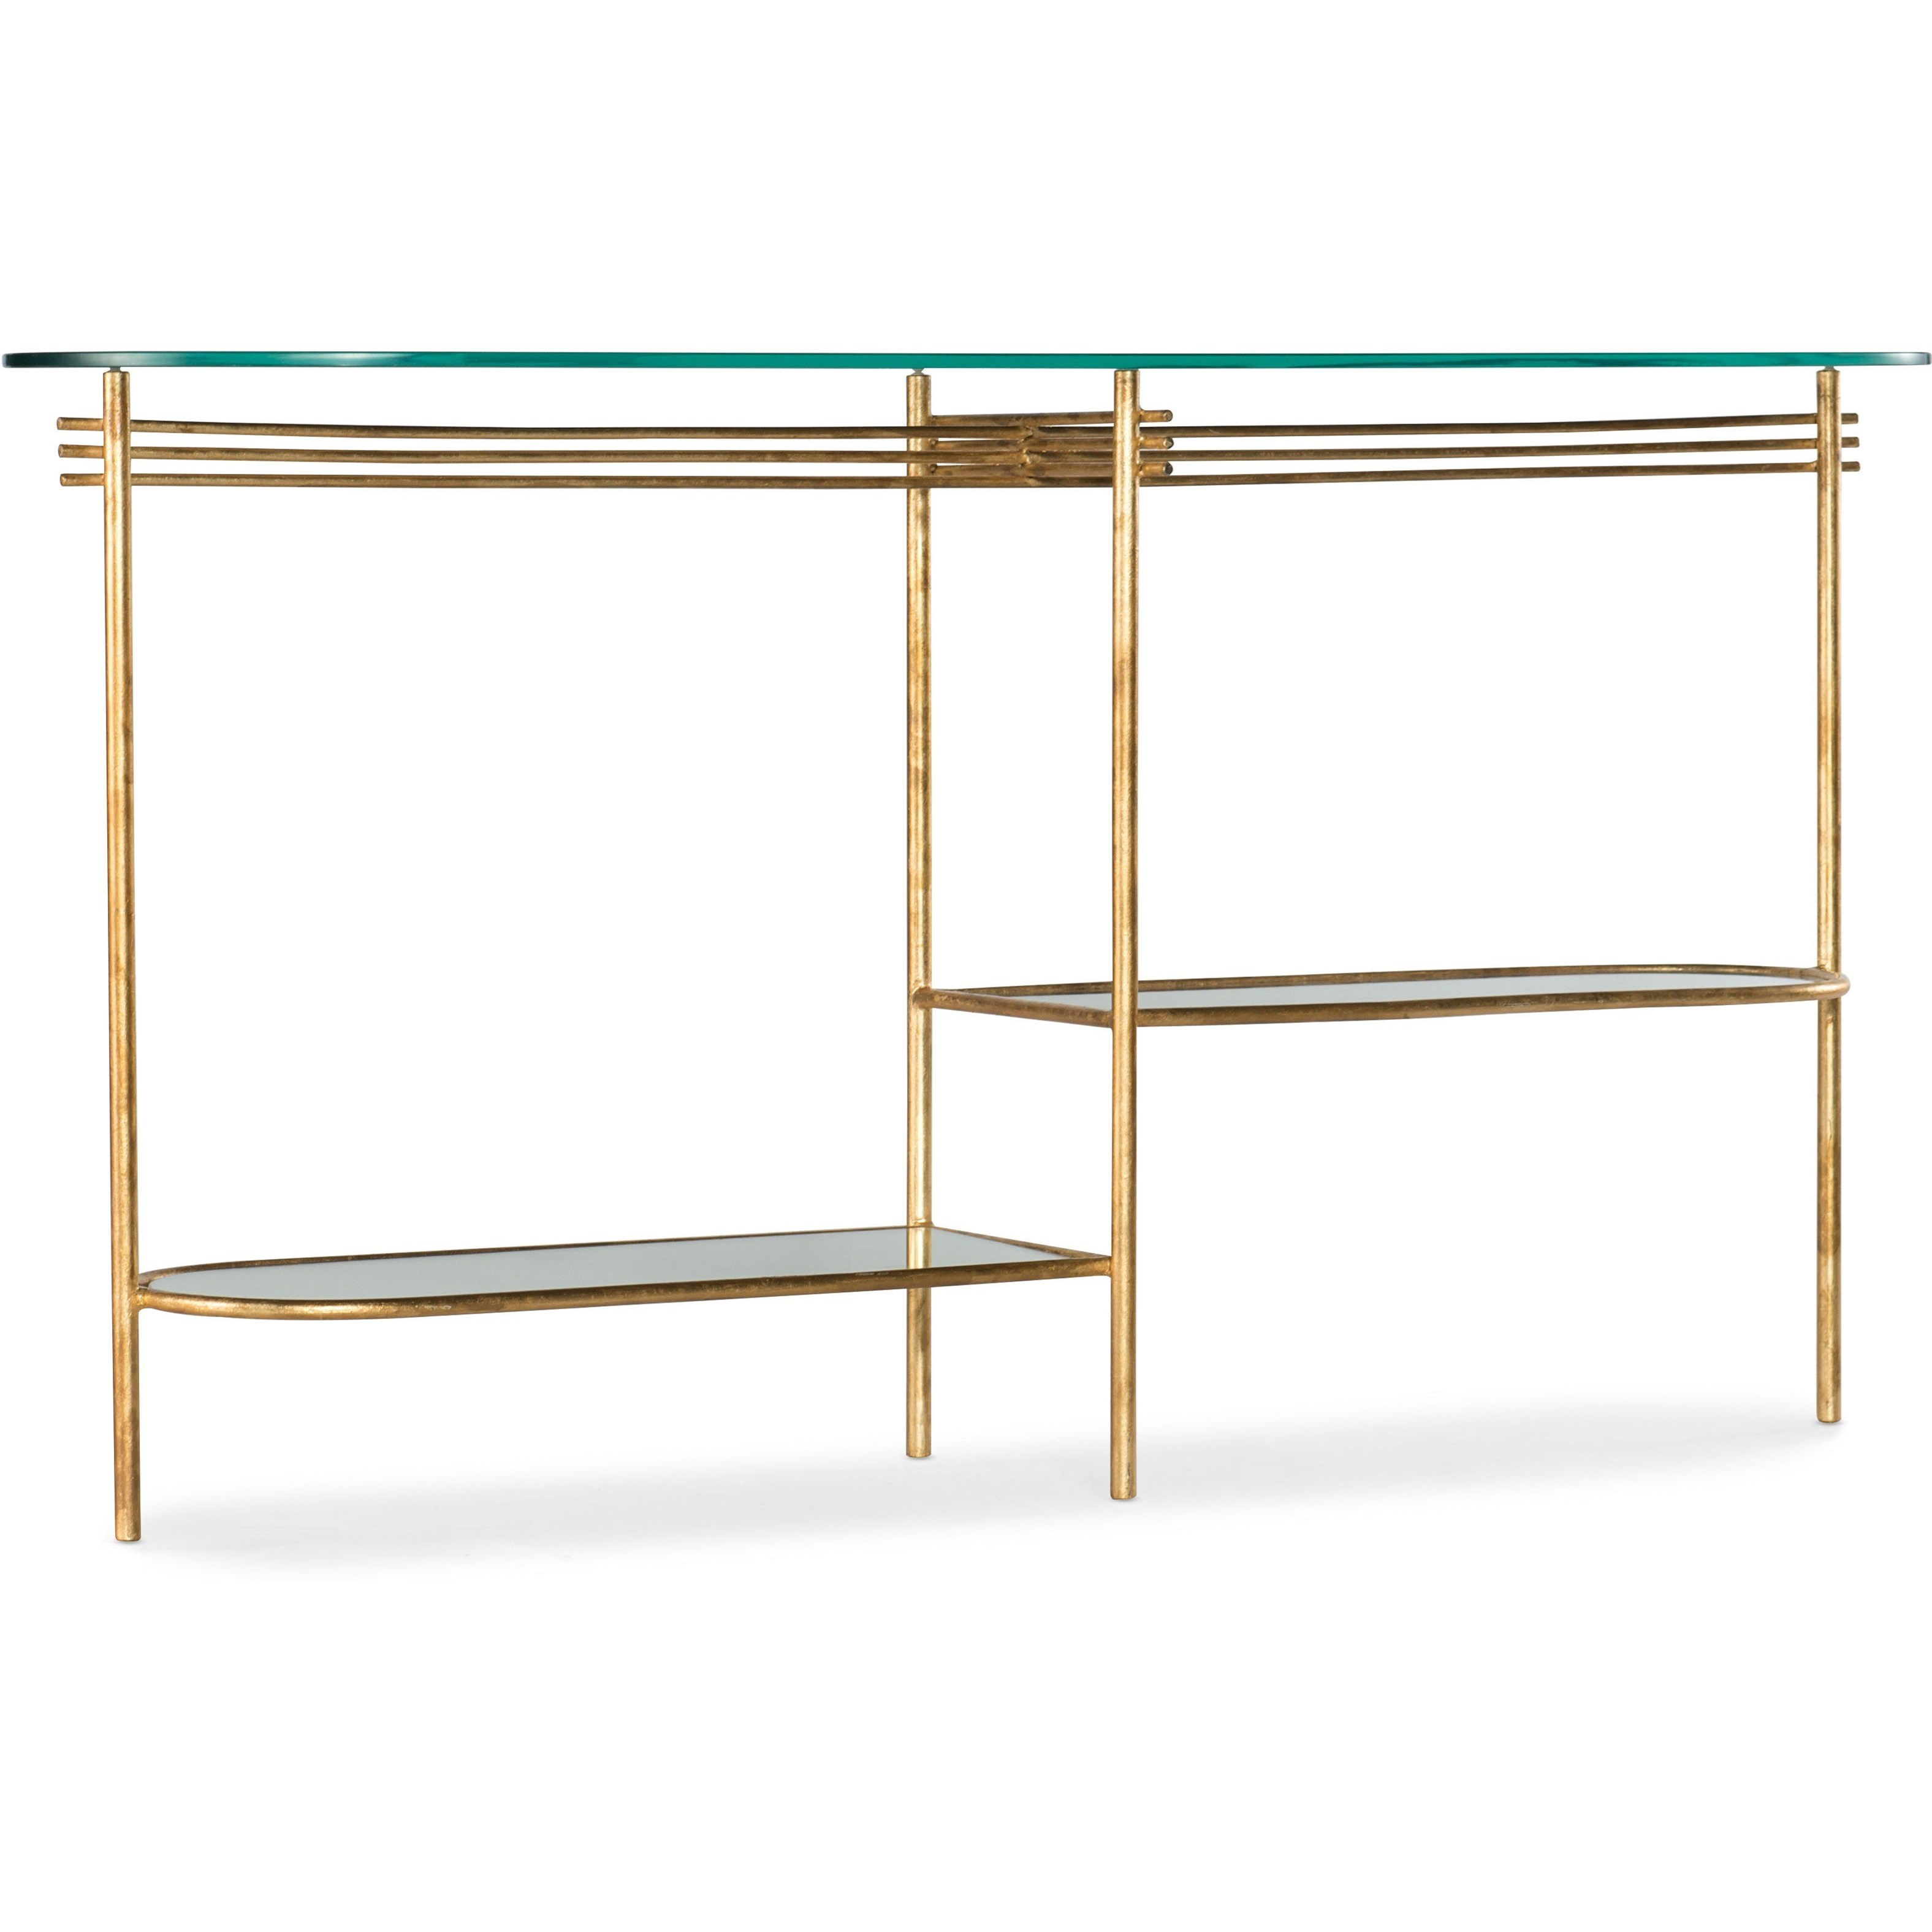 Glass Top Console Table Well Balanced Contemporary Round 2 Shelf Glass Top Console Table By Hooker Furniture At Belfort Furniture